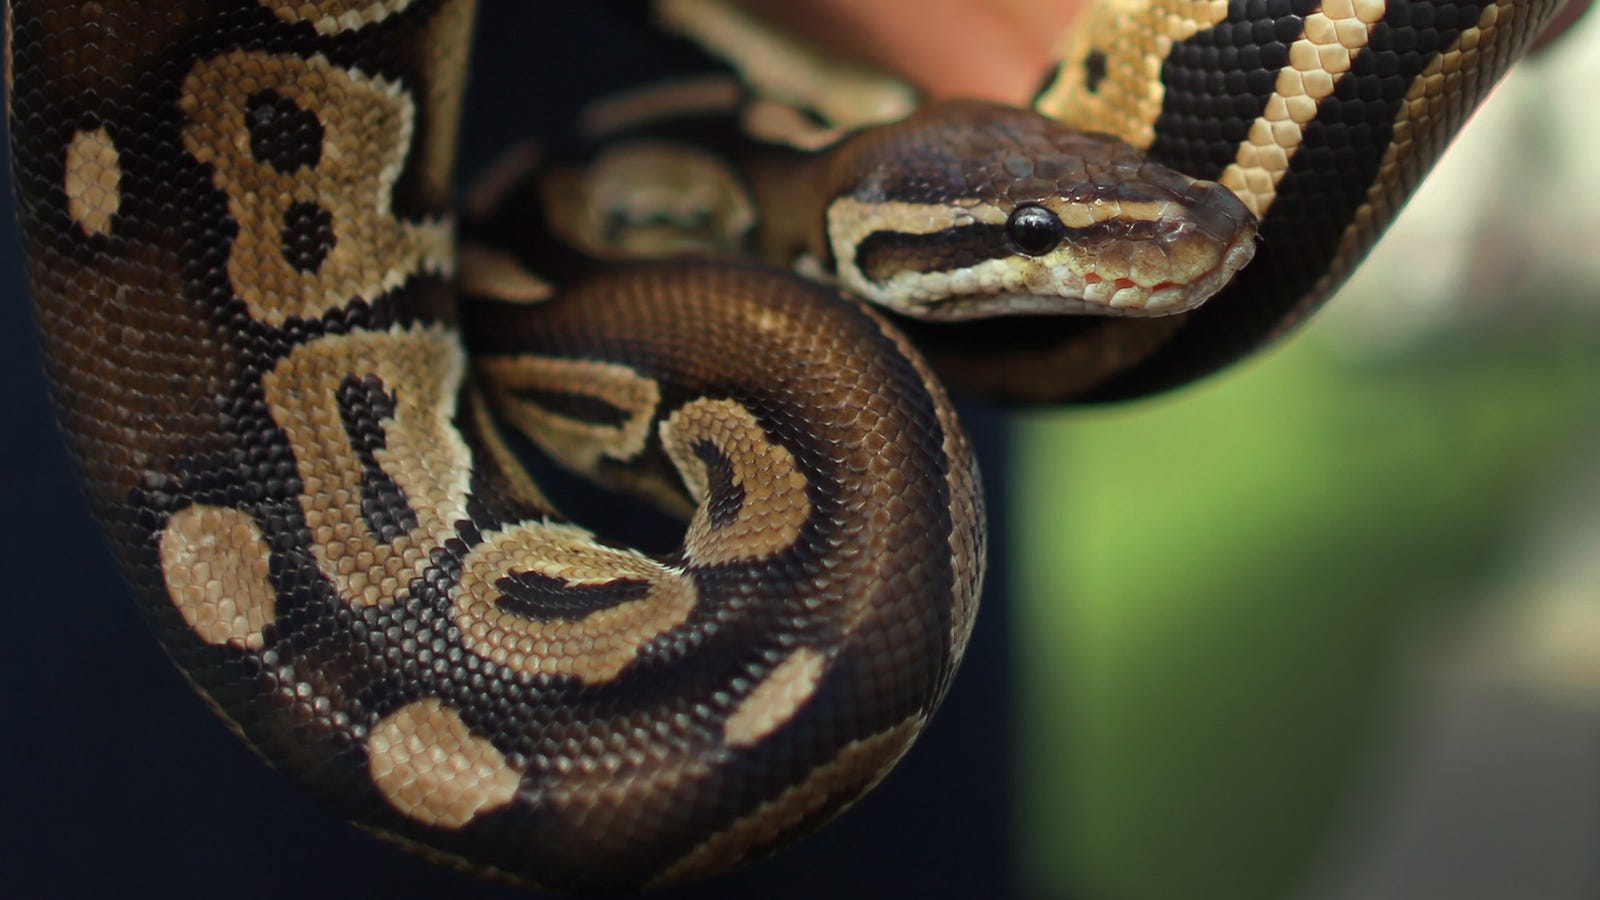 'Don't Panic': Snakehunt Continues After Three-Foot Python Escapes Inside High School